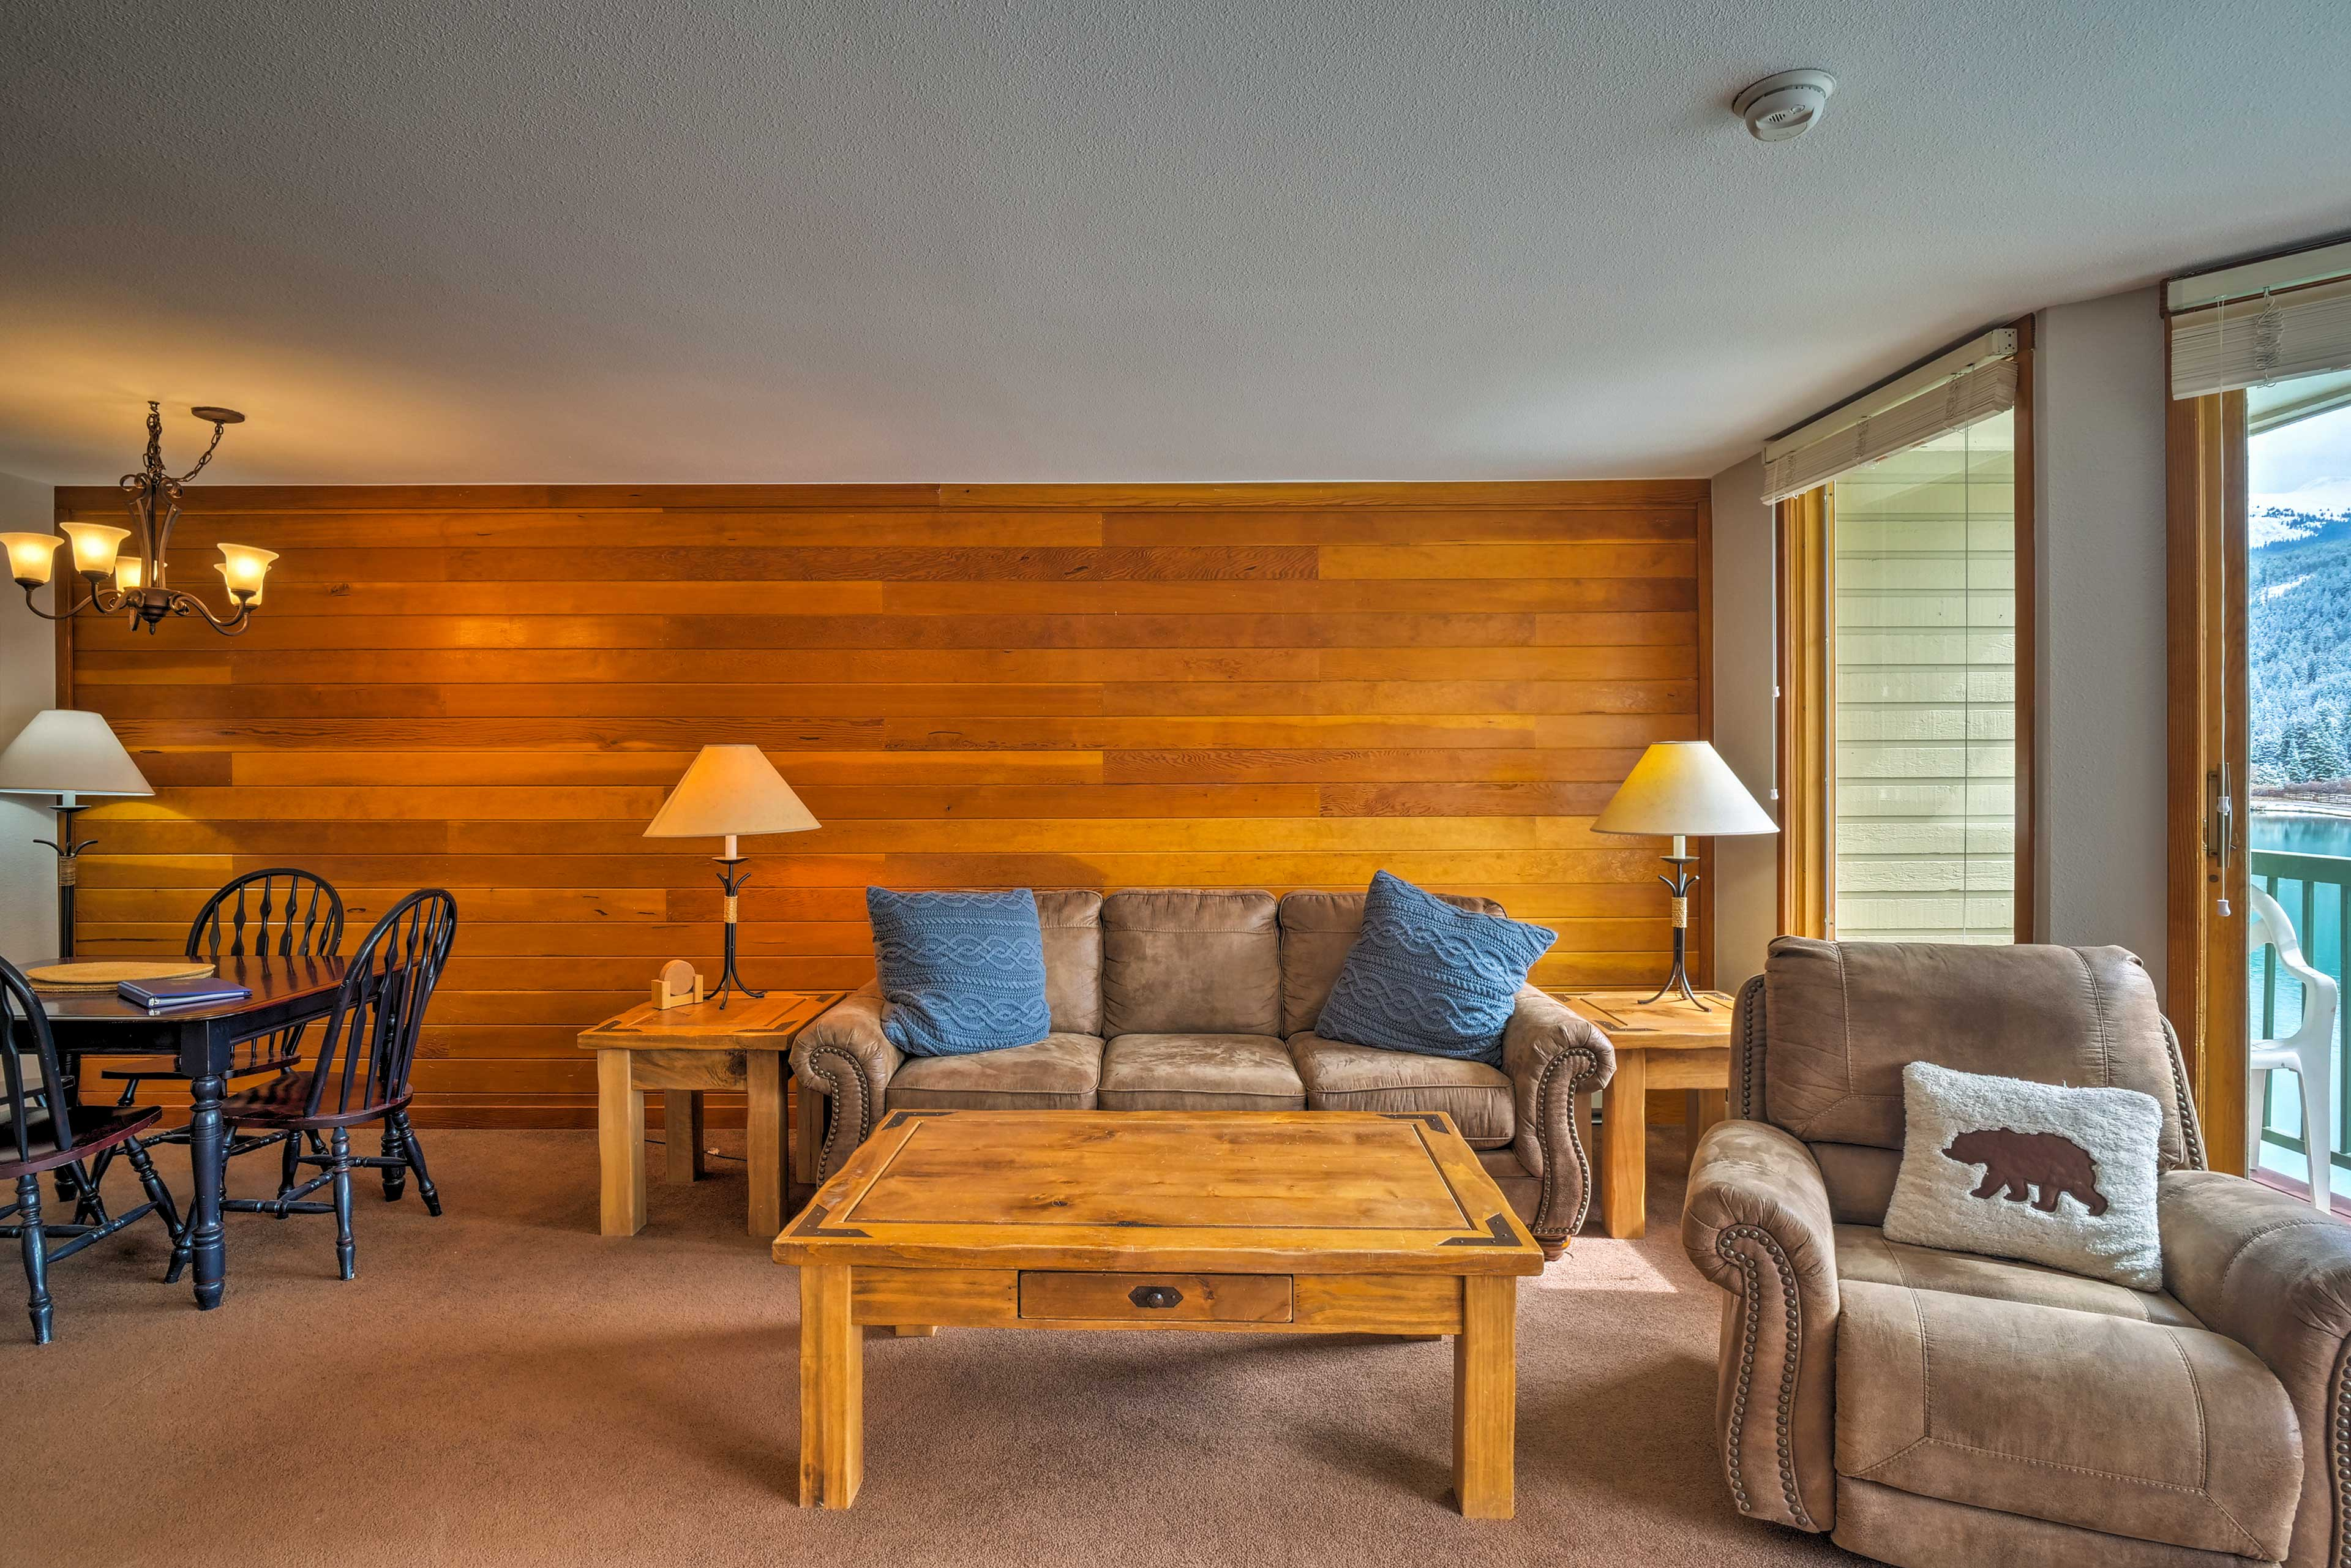 The spacious living area provides room to kick back and relax during downtime.